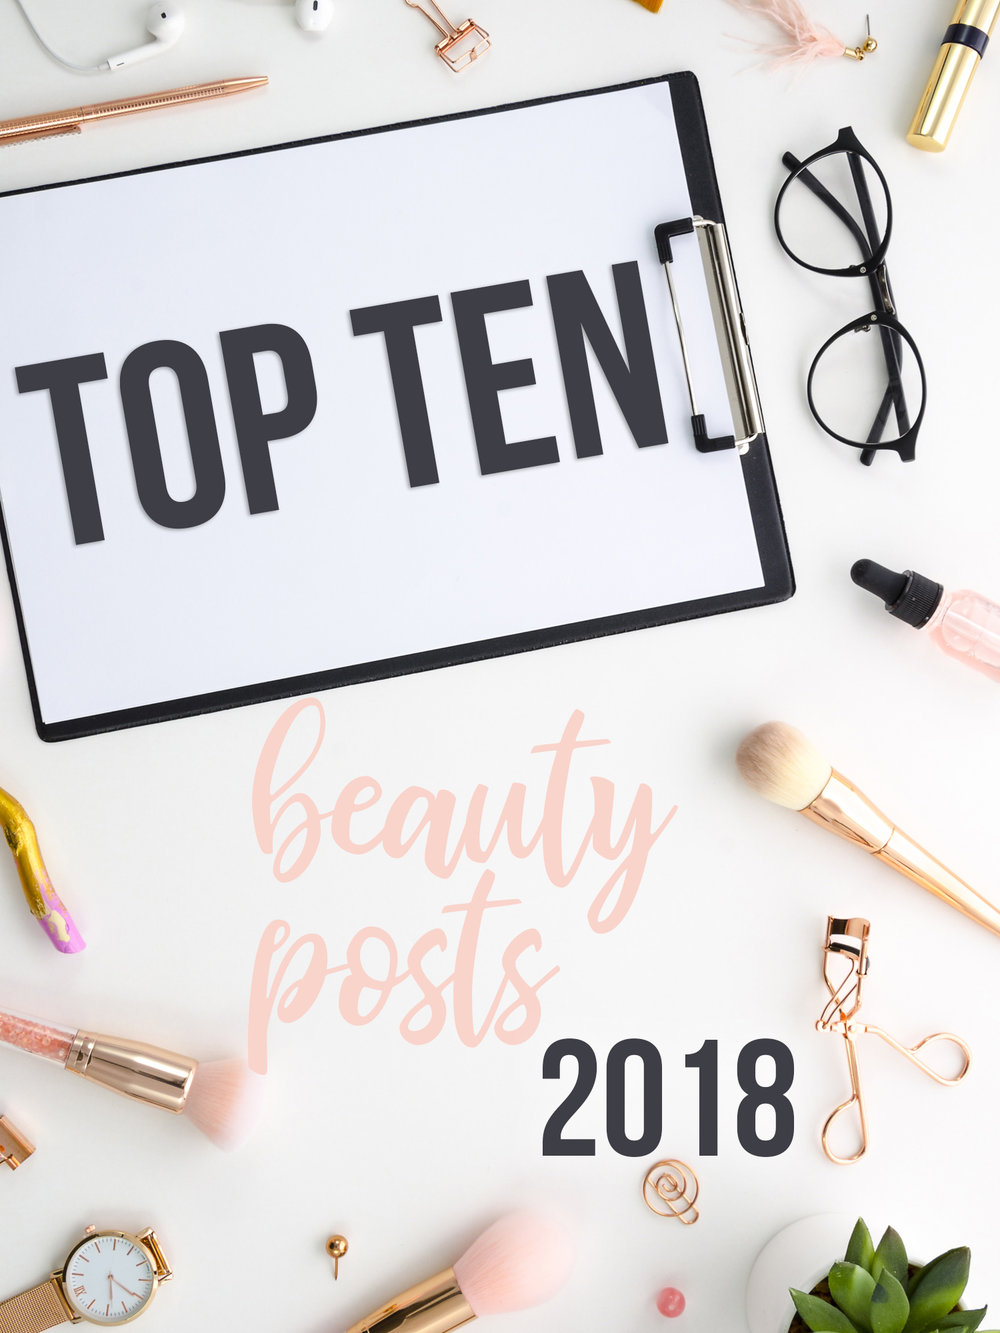 Top Ten Beauty Posts 2018